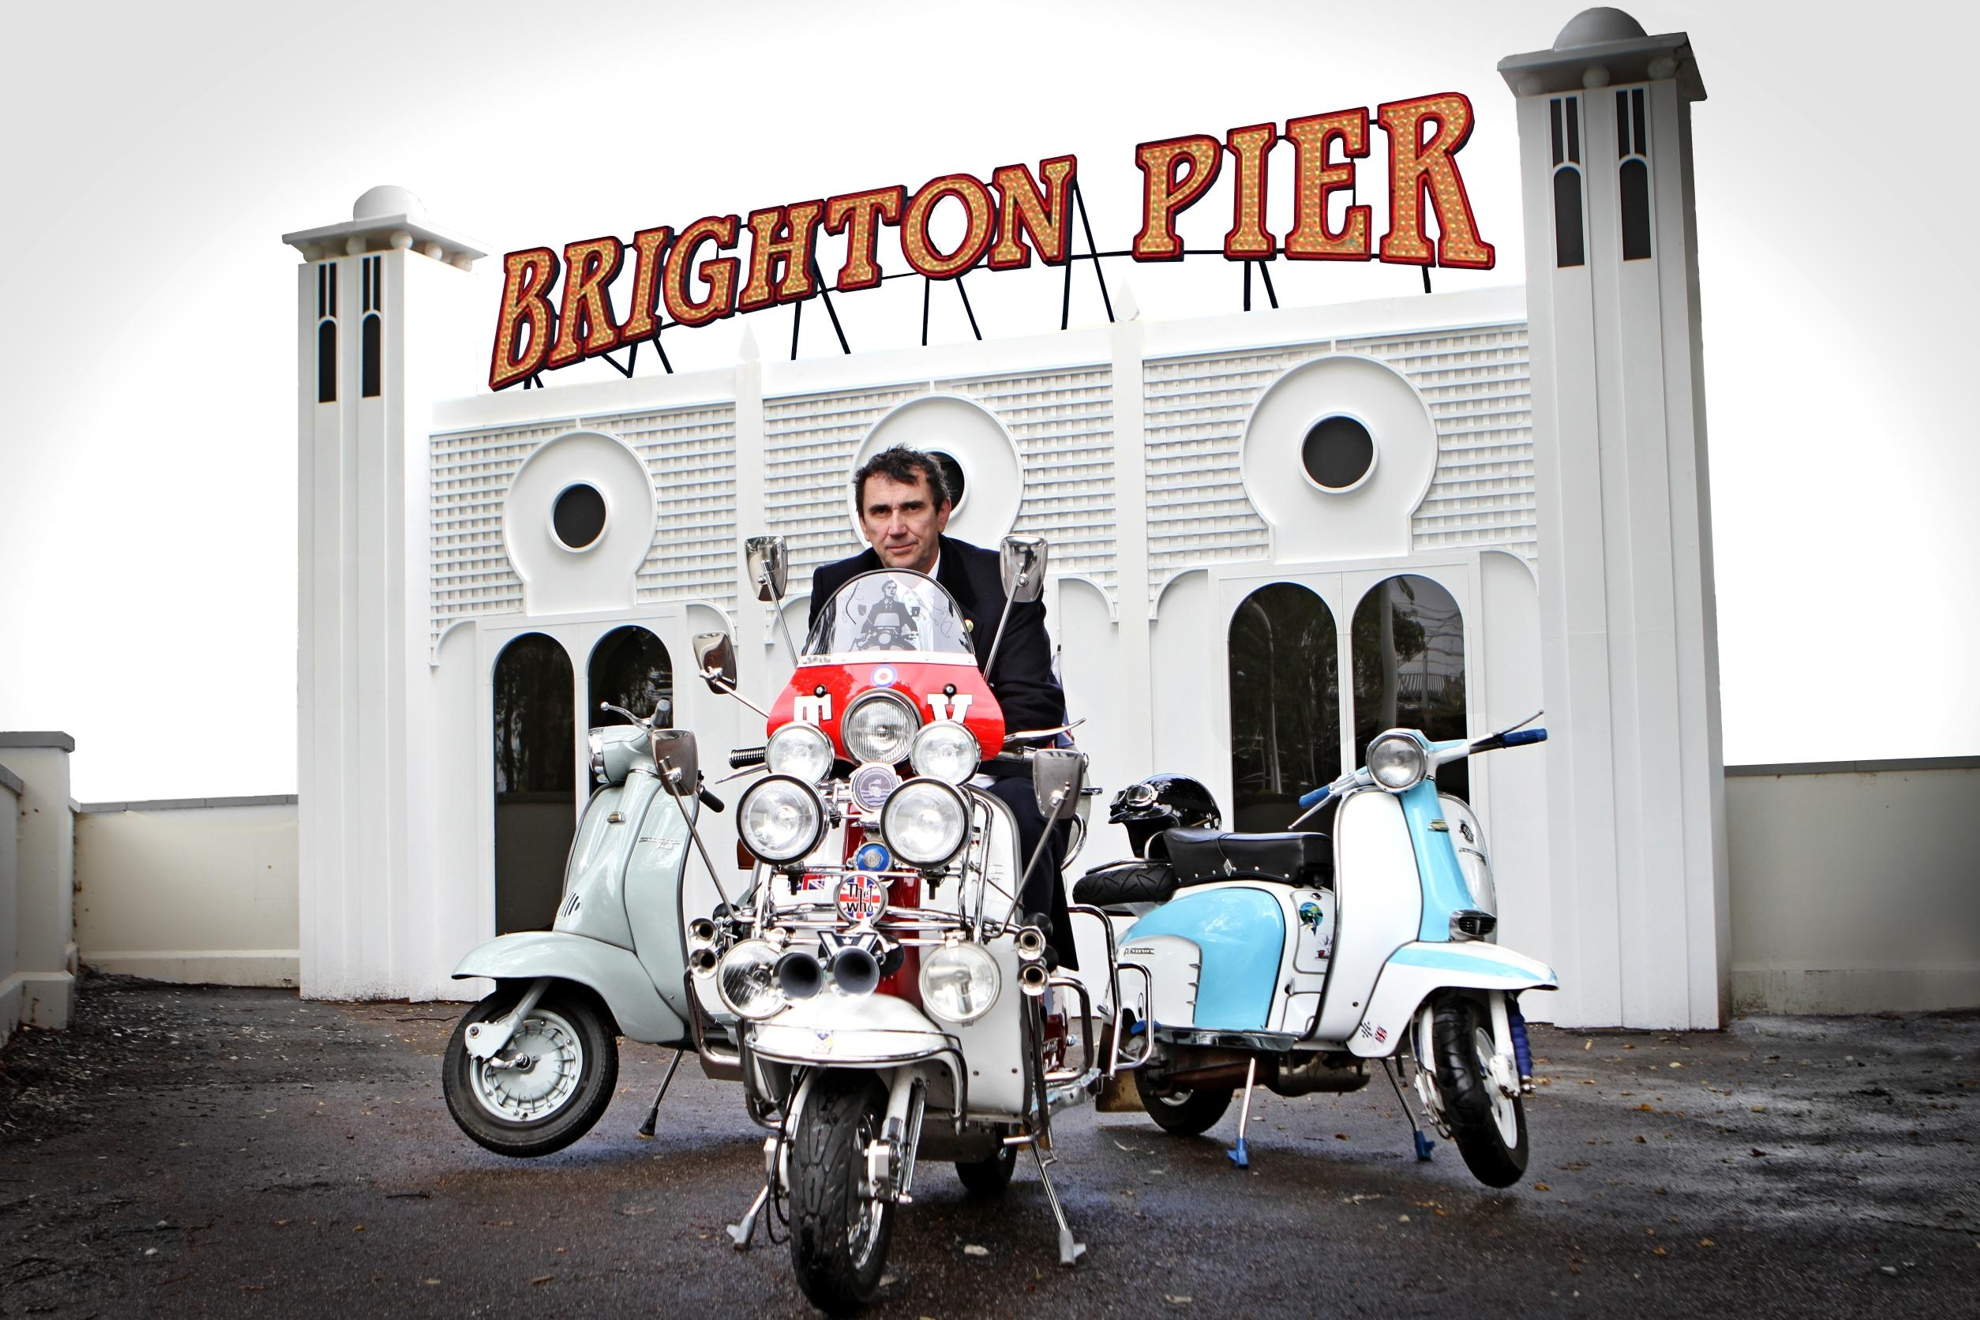 Goodwood-Brighton-Pier